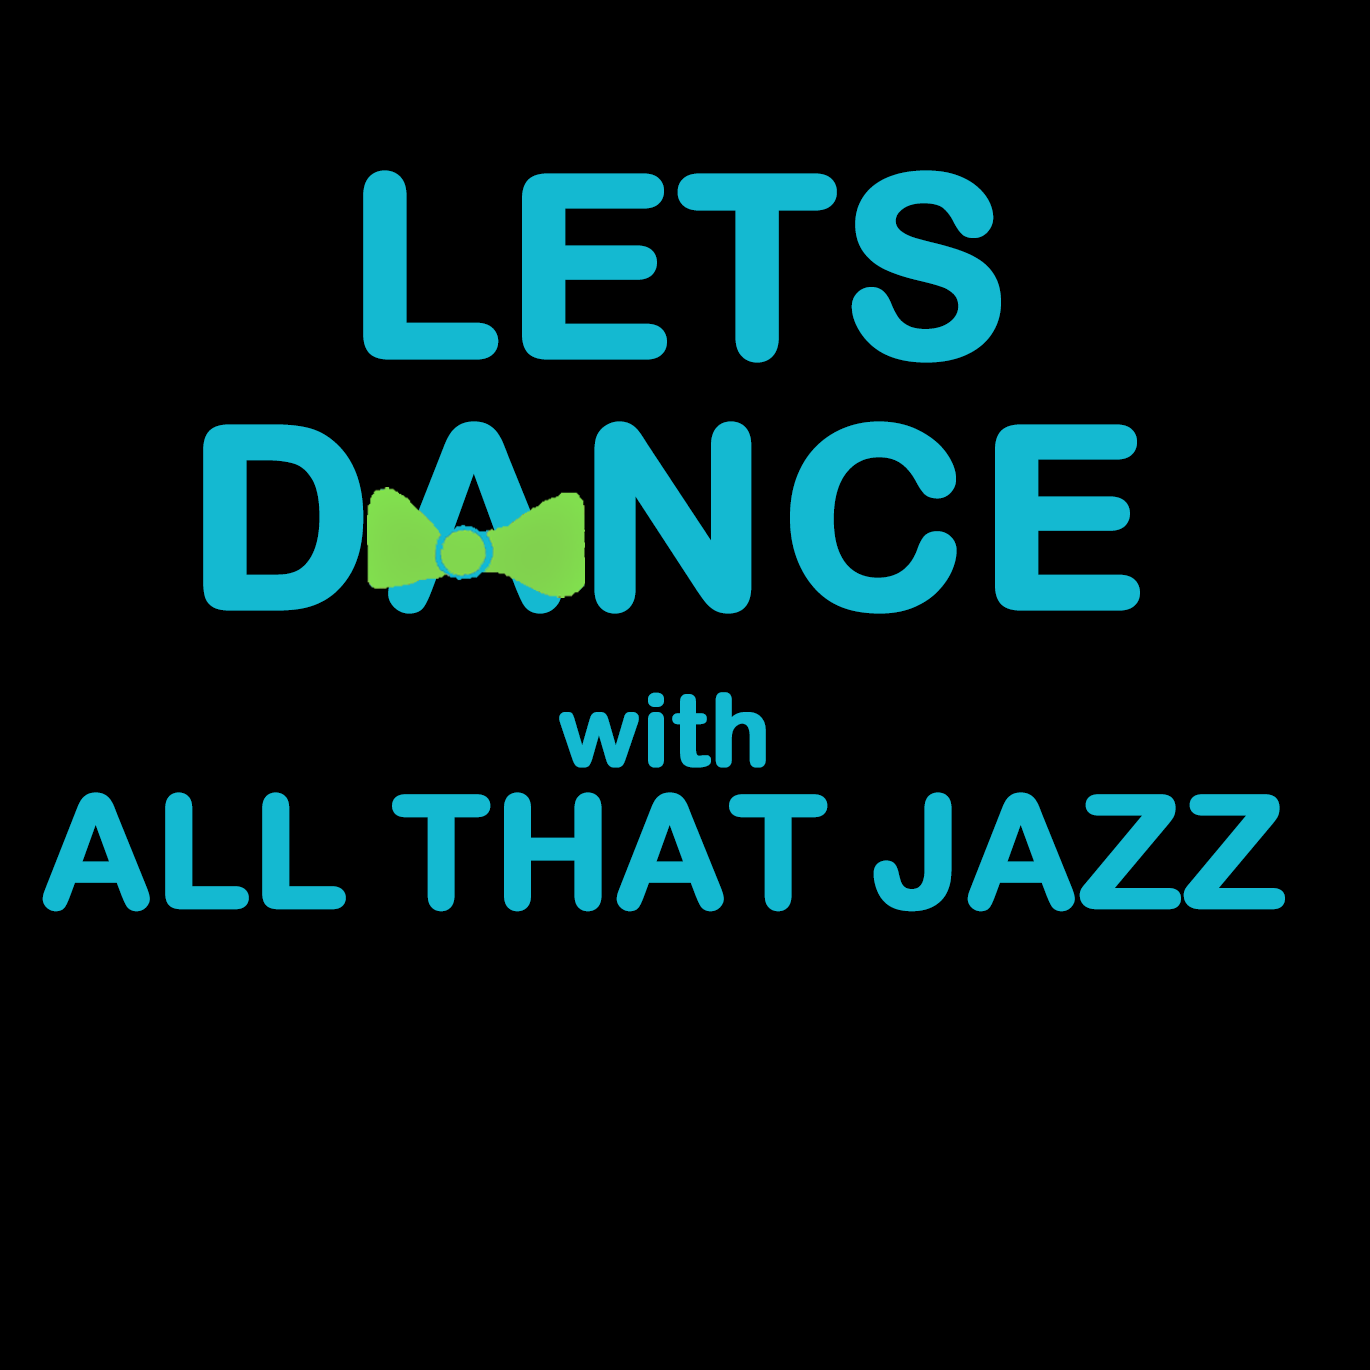 All That Jazz - Let's Dance - 2014 Show - Active Image Media